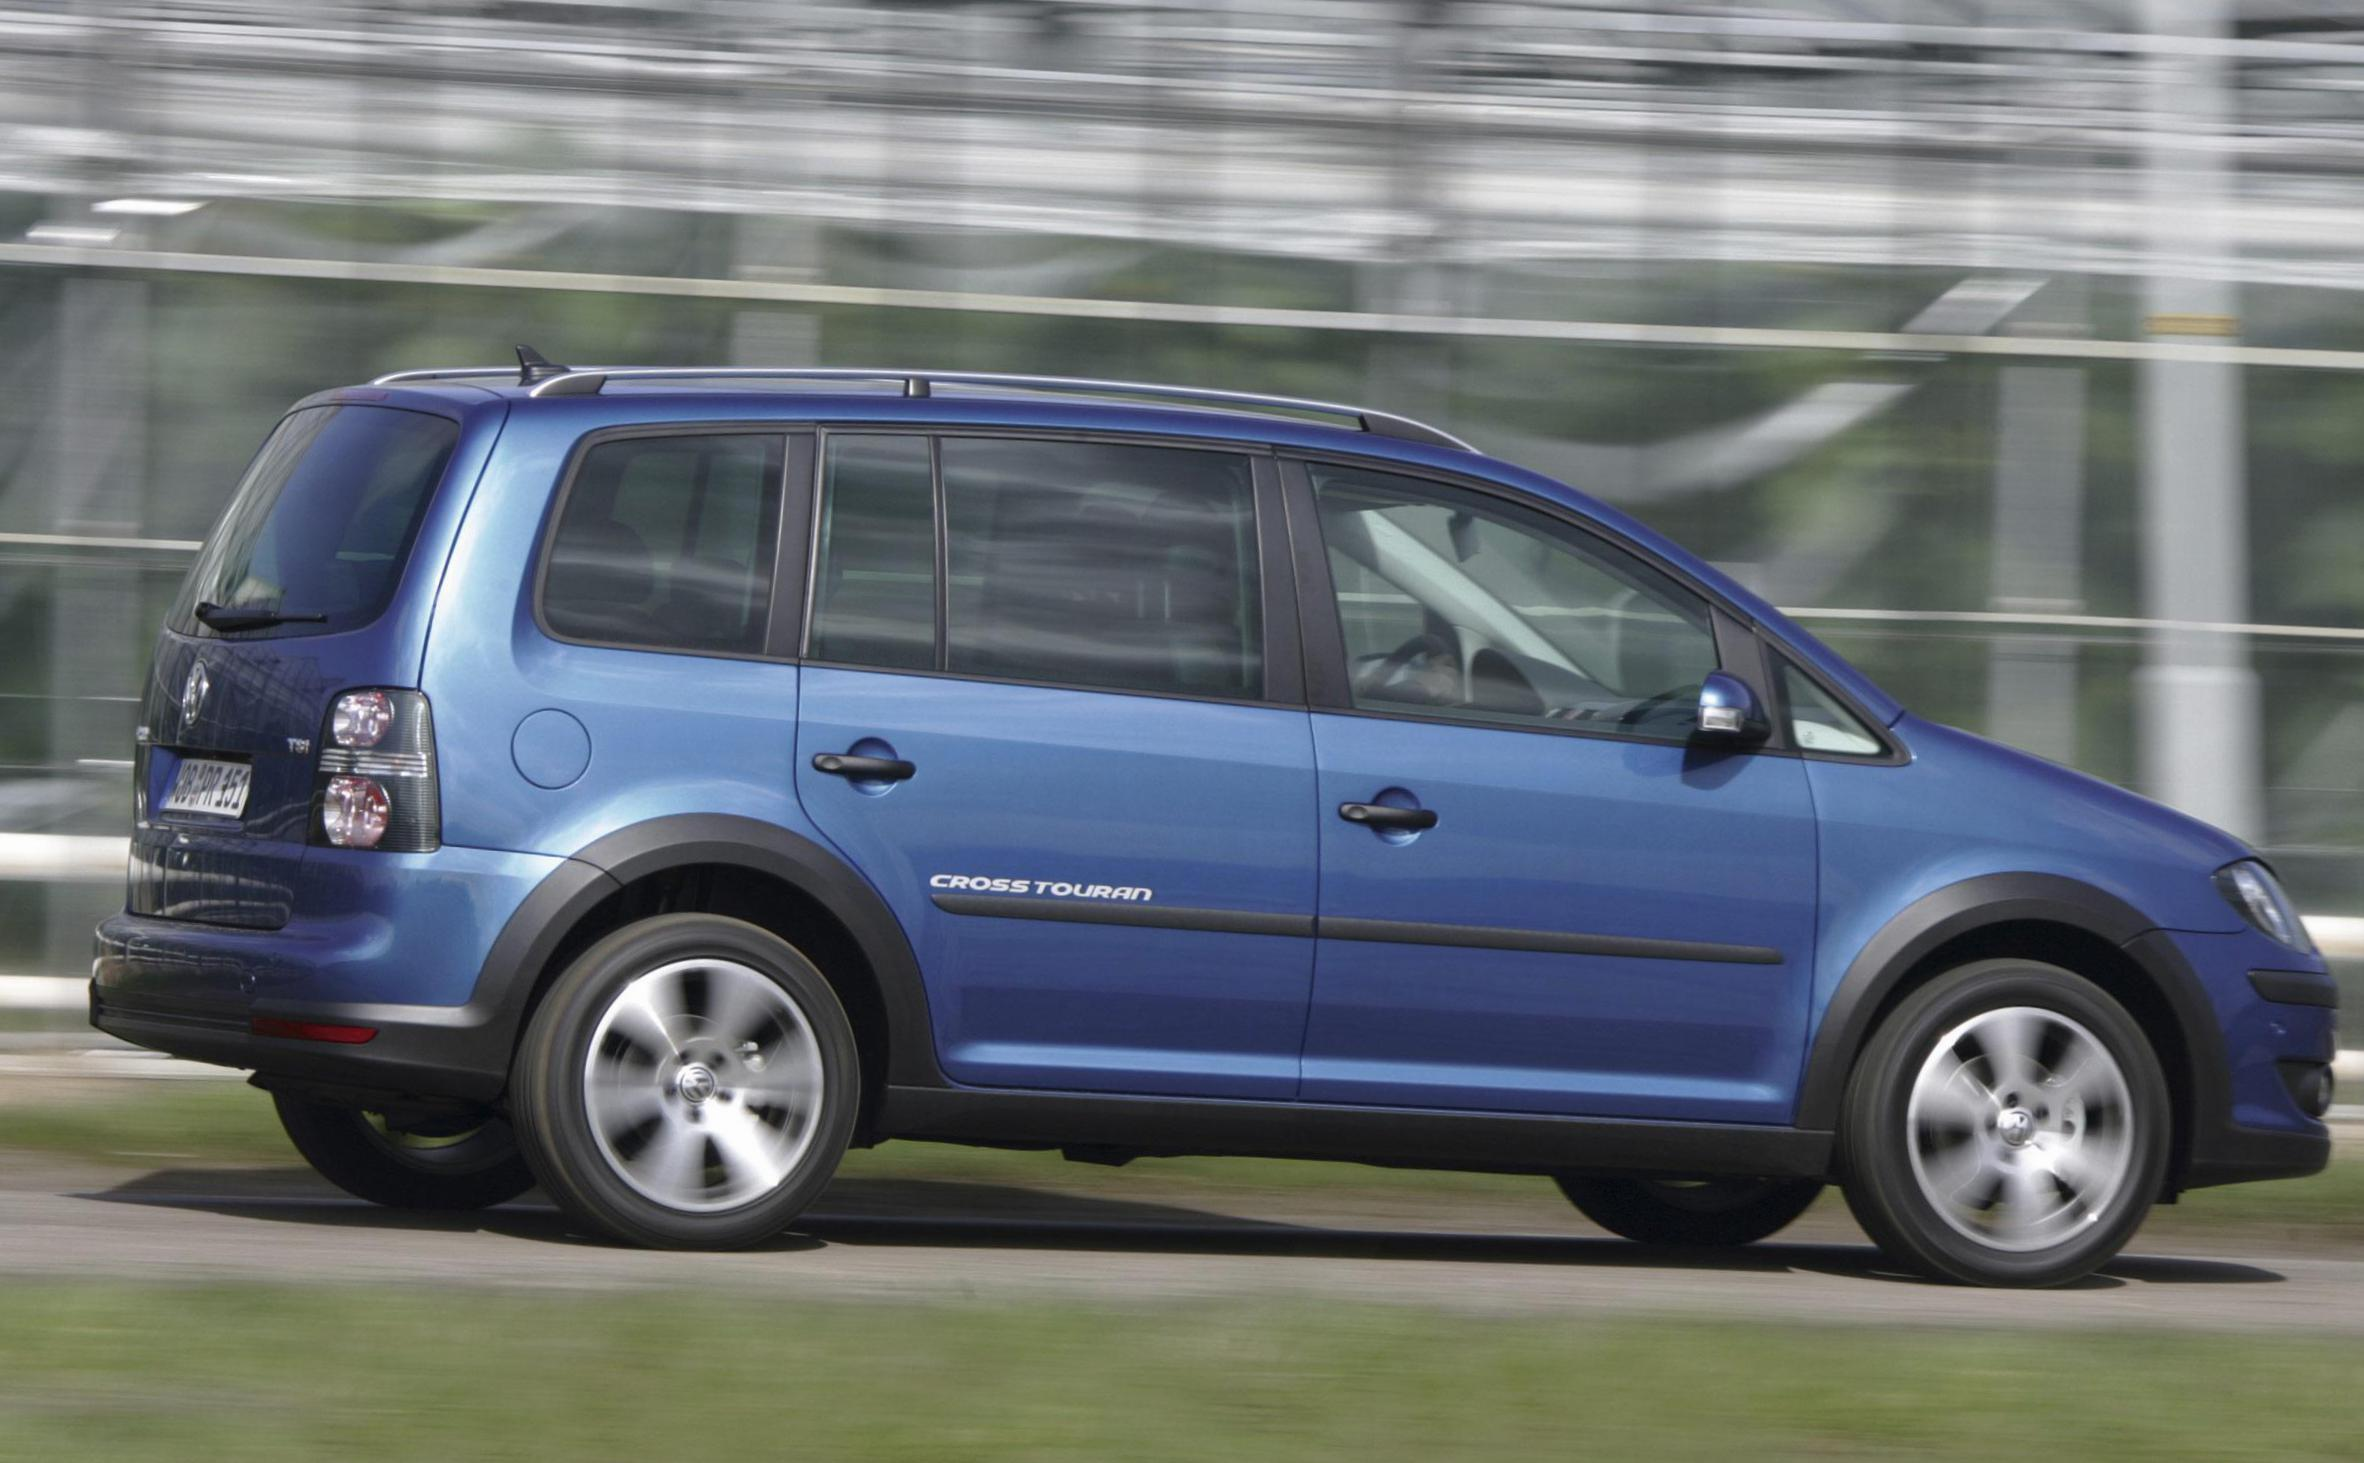 Volkswagen Cross Touran used minivan